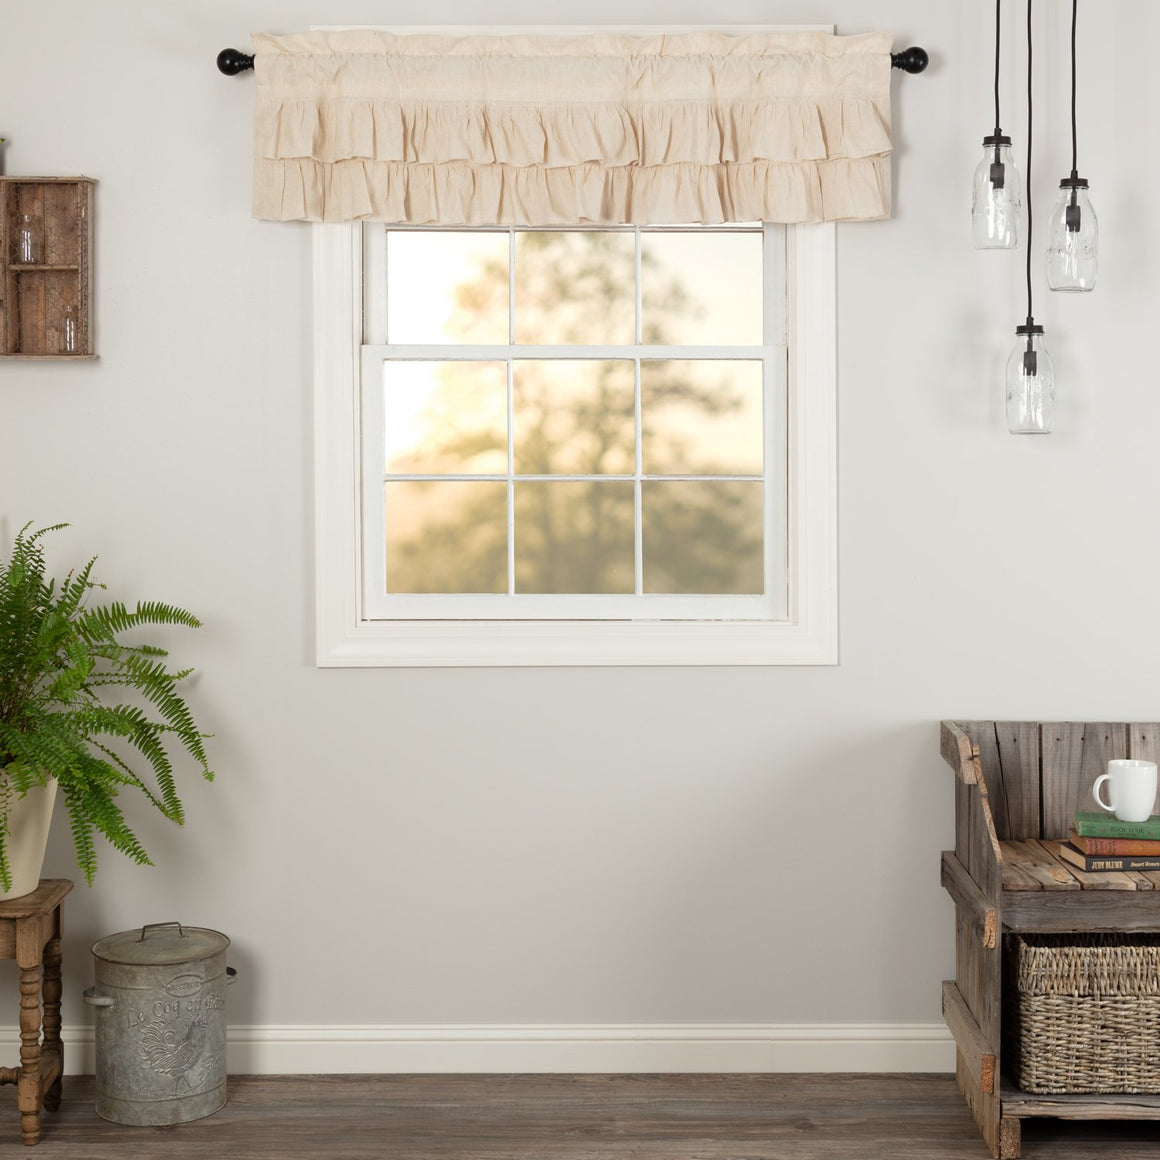 Simple Life Flax Ruffled Valance